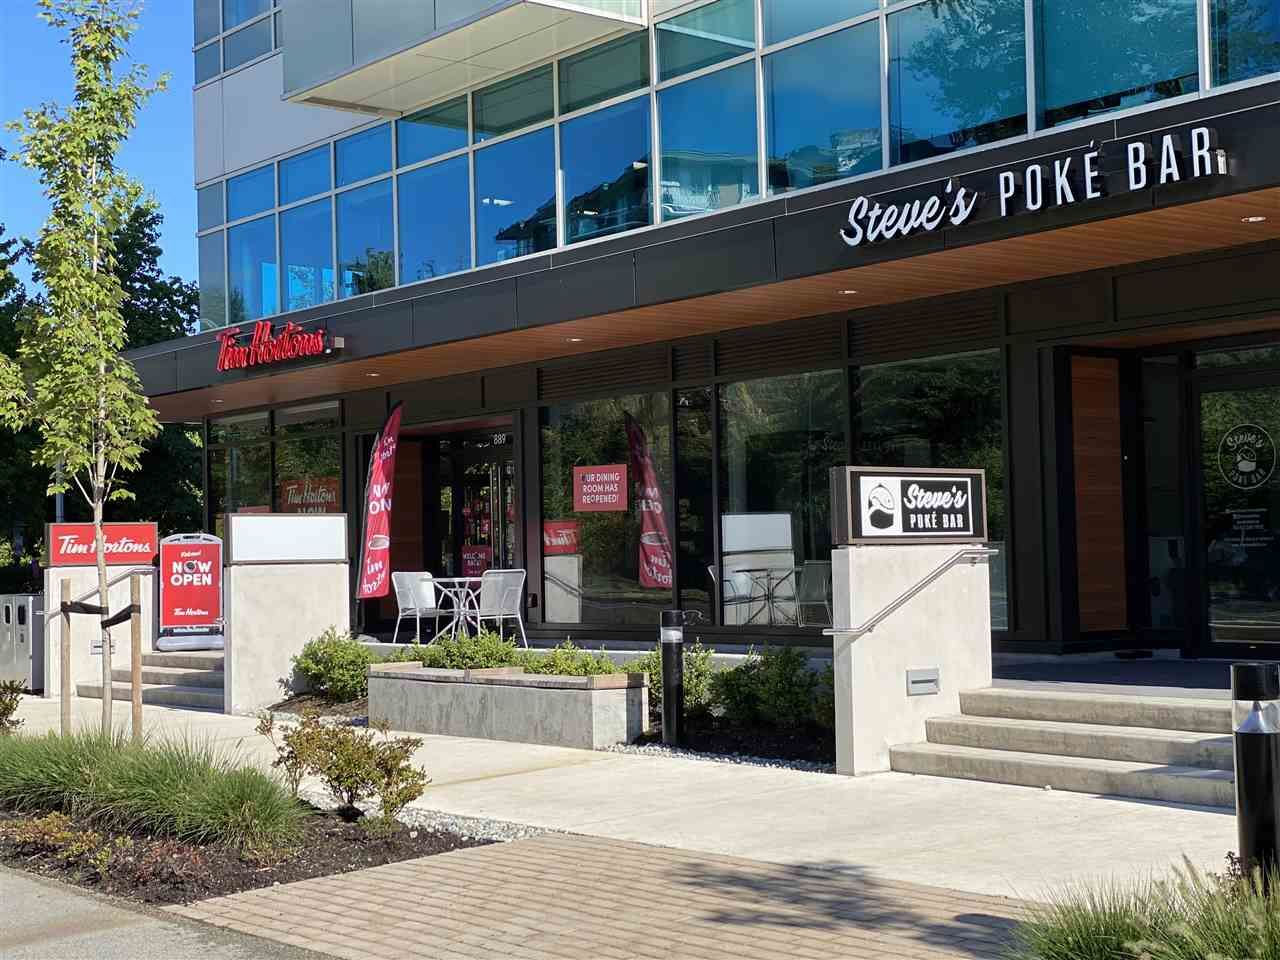 Main Photo: 891 GREAT NORTHERN Way in Vancouver: Mount Pleasant VE Business for sale (Vancouver East)  : MLS®# C8033487